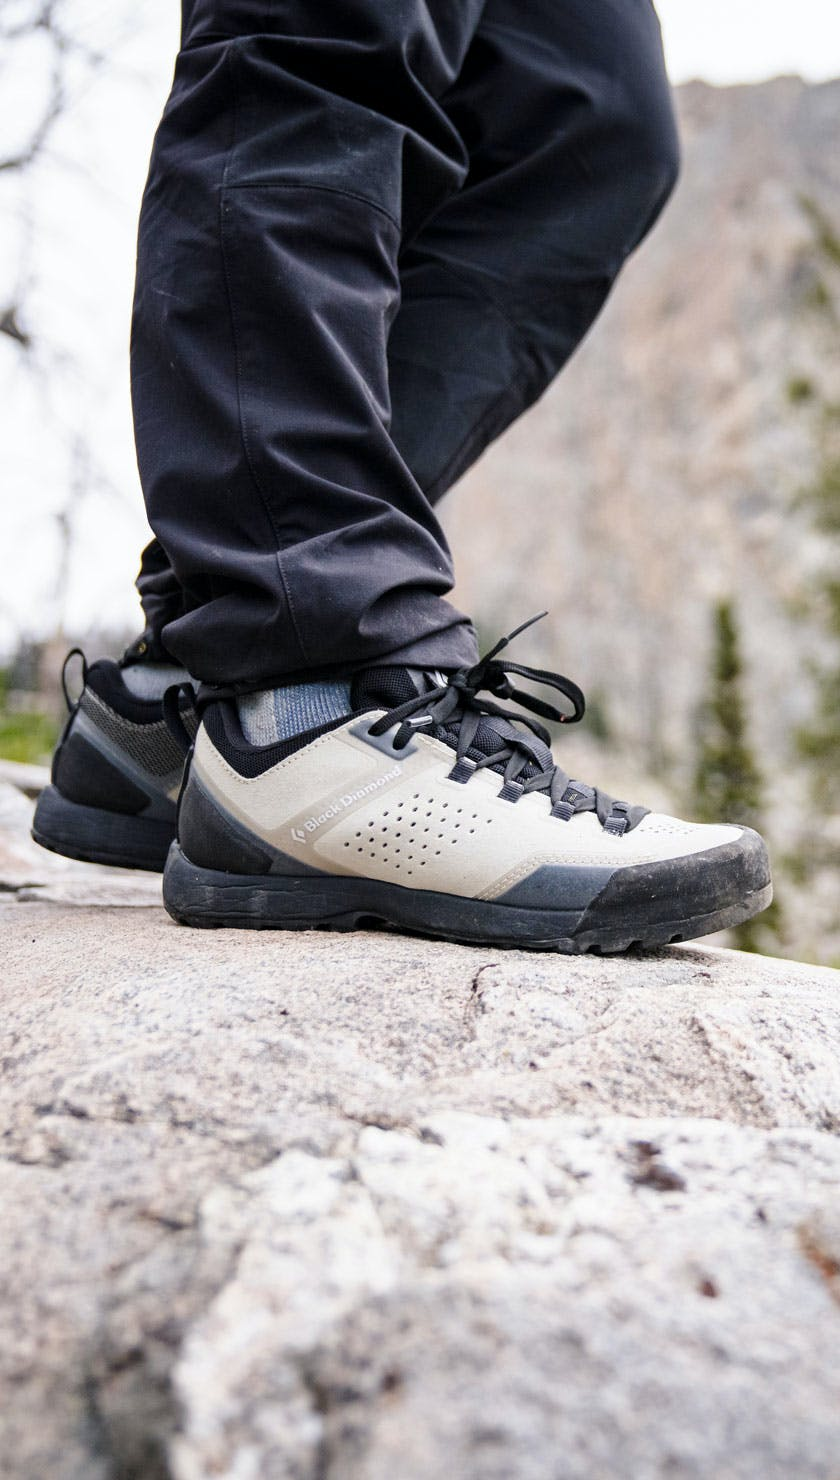 The Black Diamond Mission XP Approach Shoe in the Grand Tetons